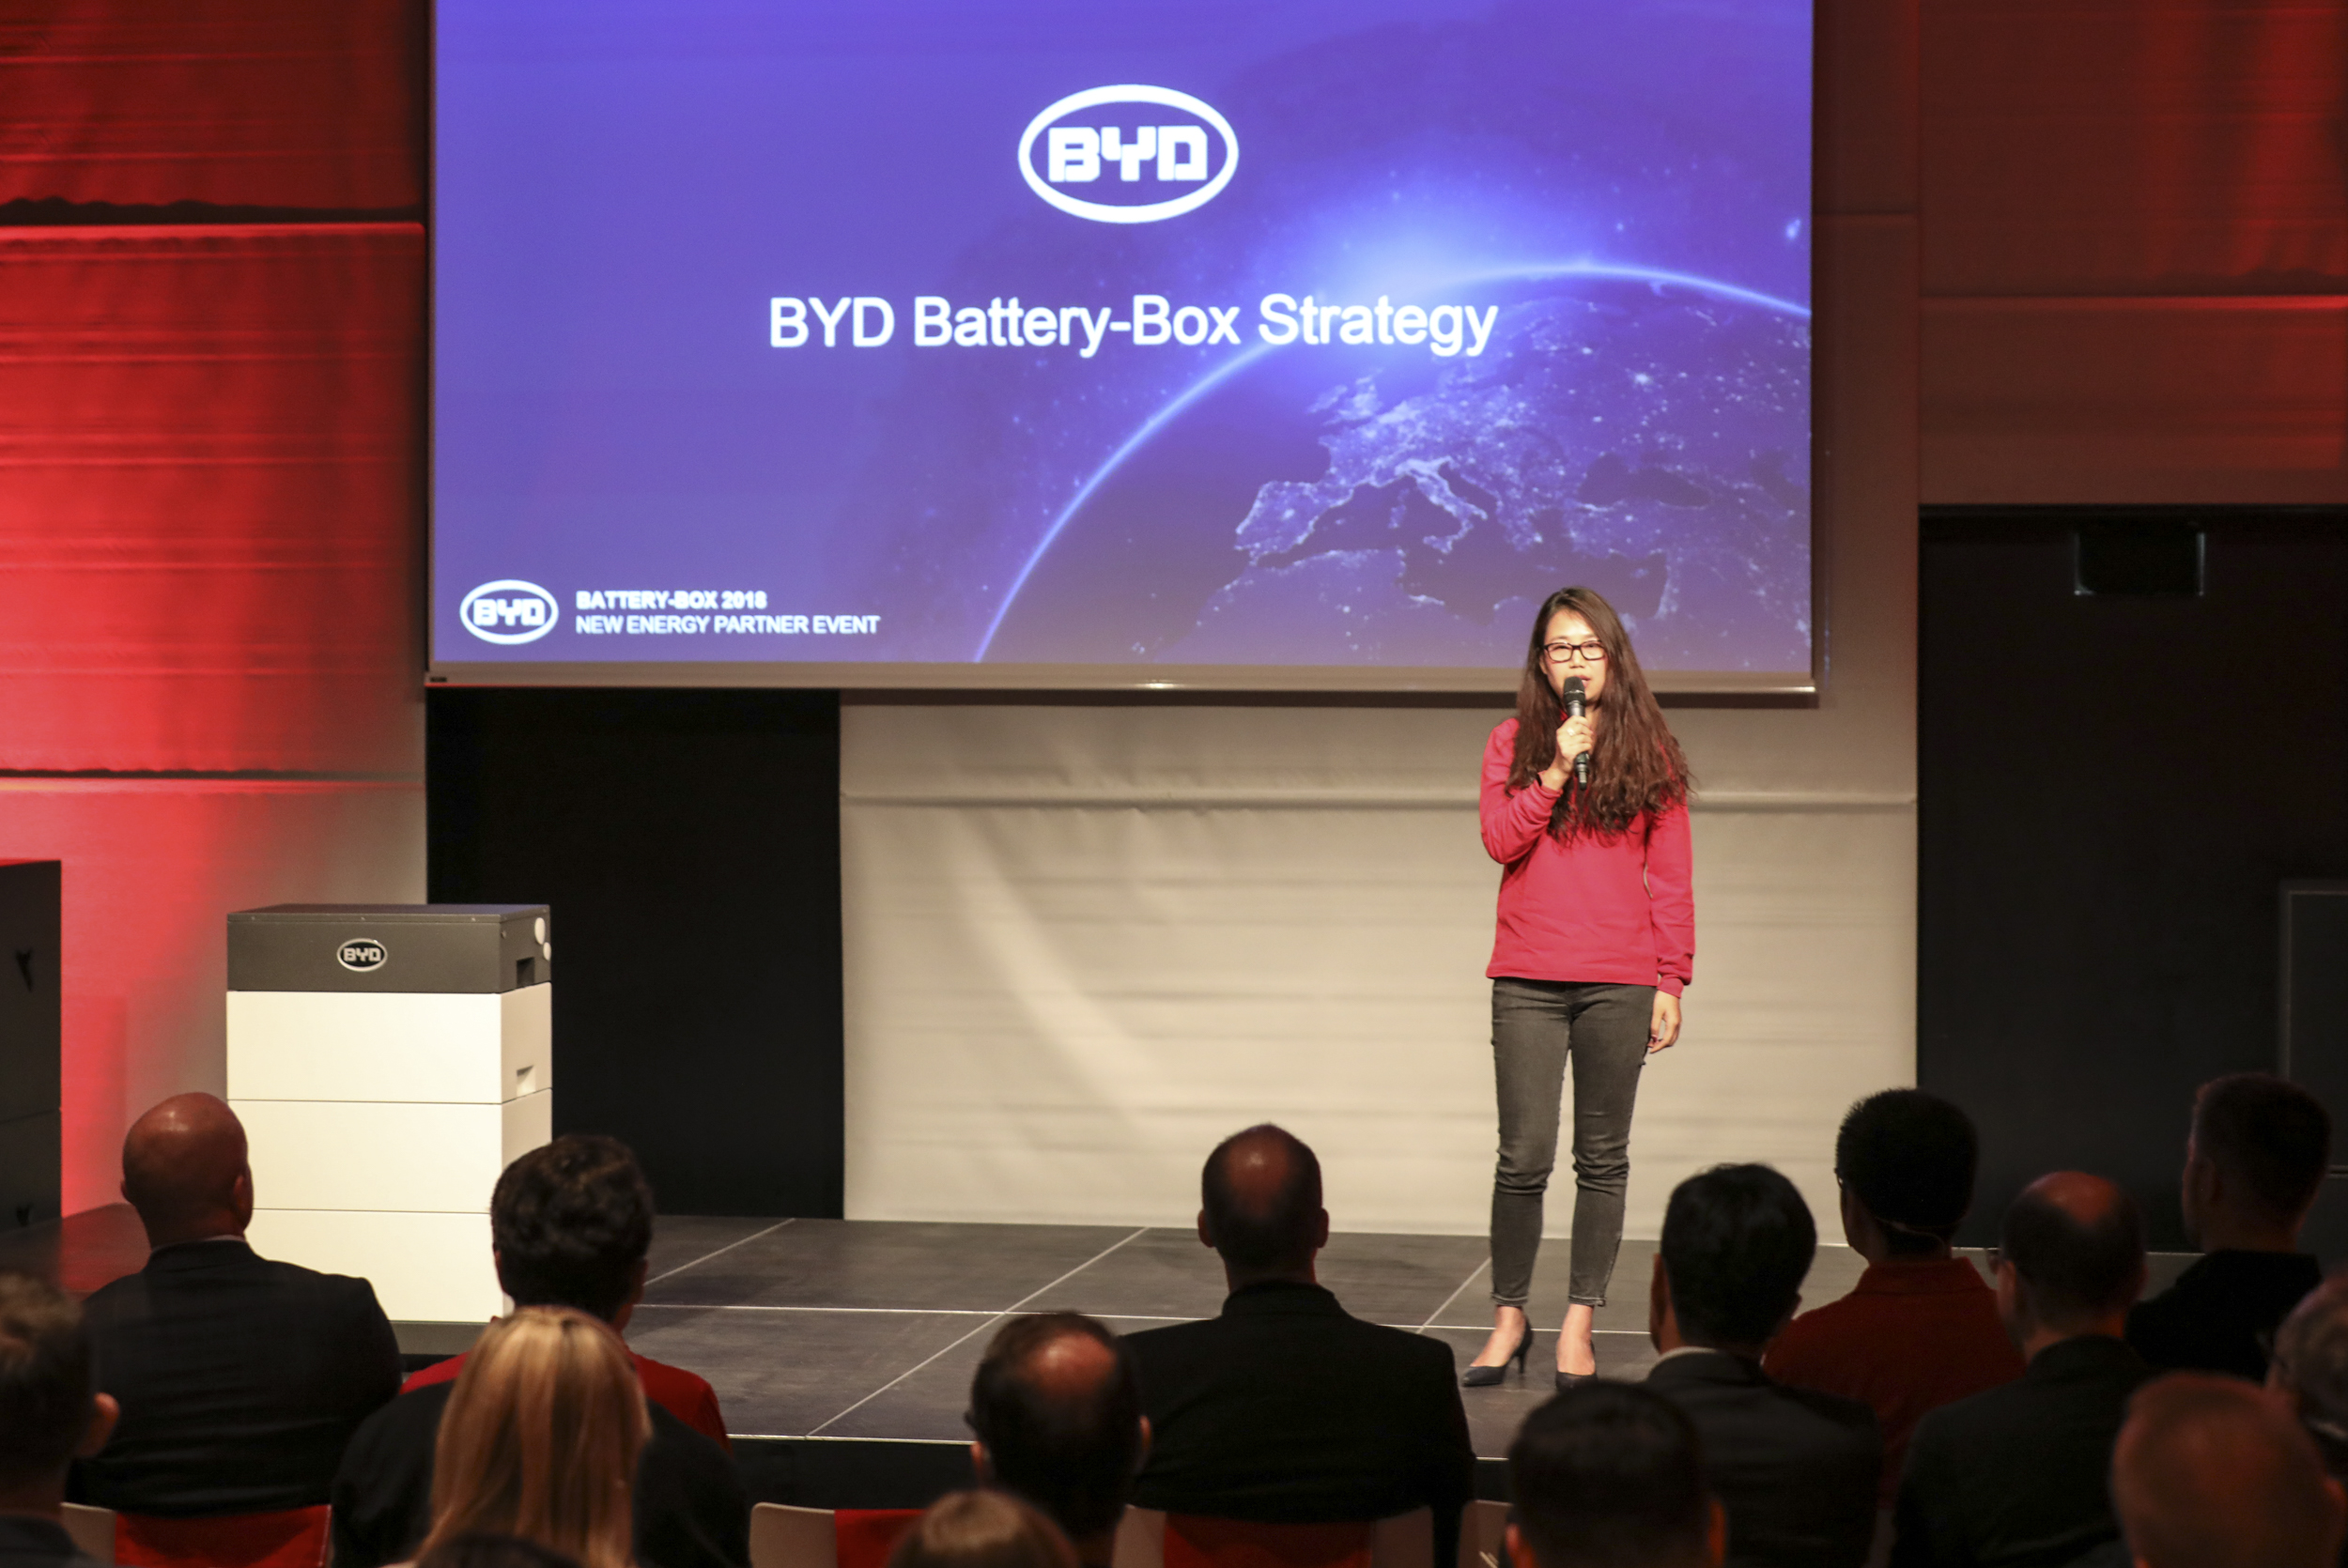 Julia Chen, Global Sales Director BYD Batteries